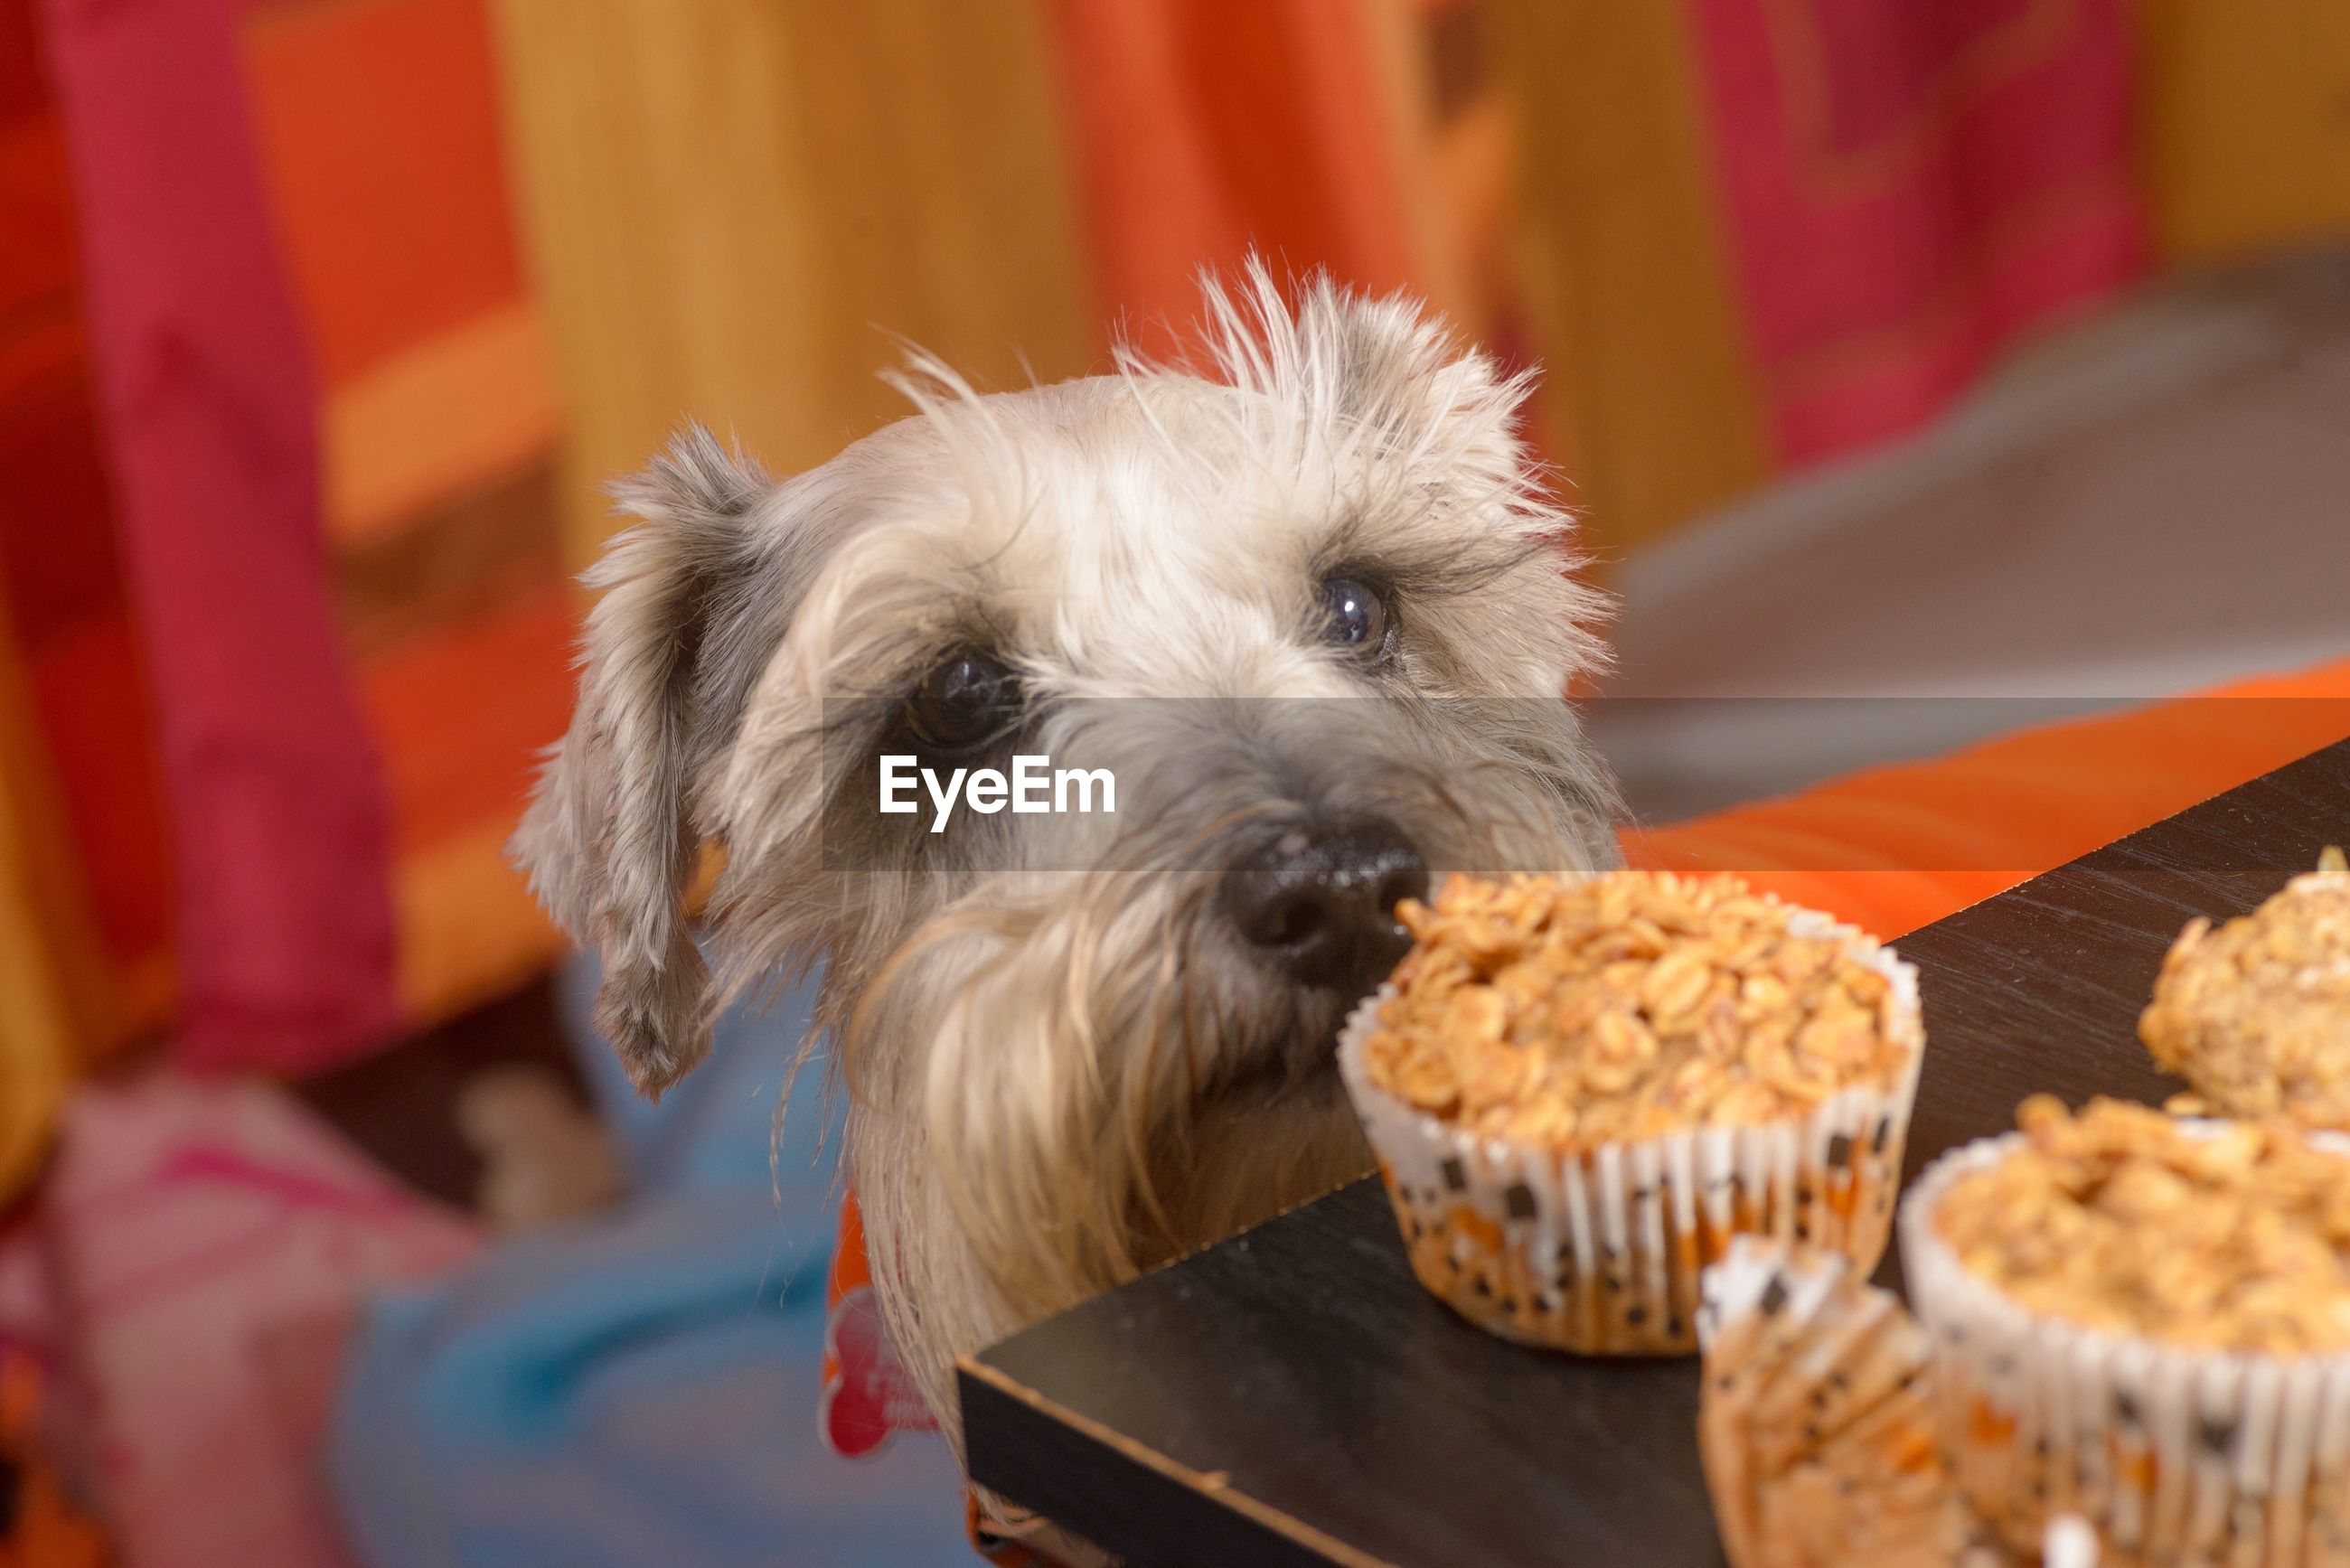 Close-up of dog by cupcakes on table